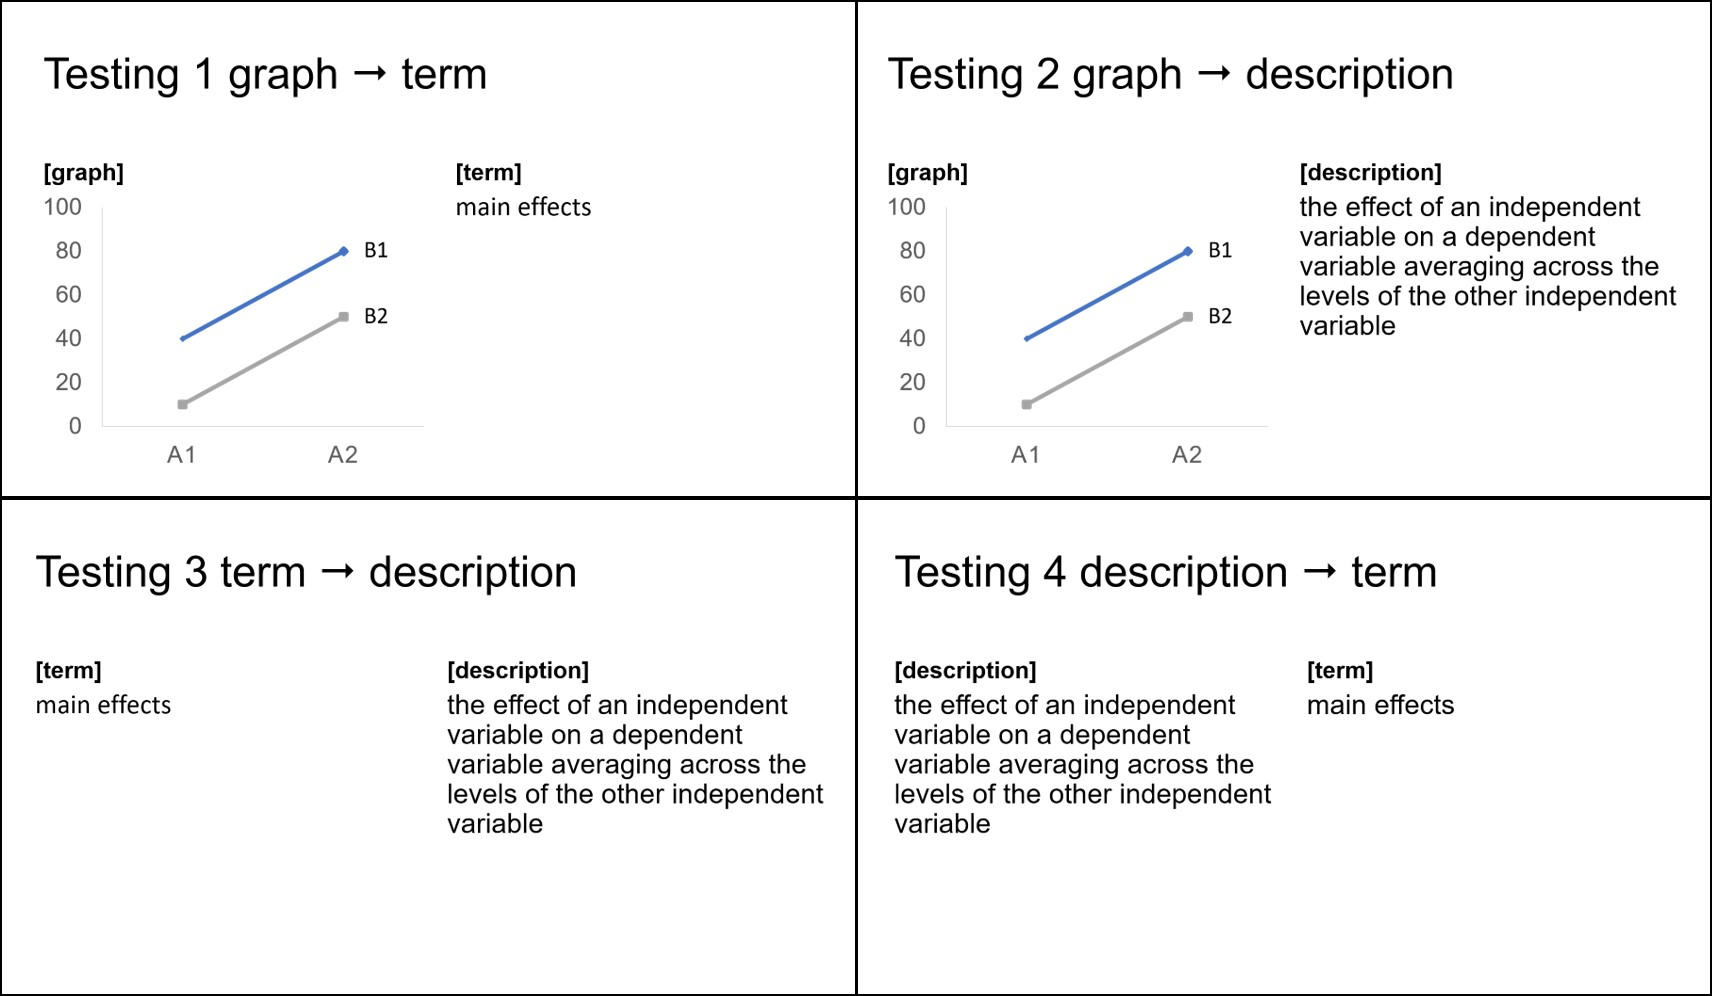 Figure 2. The untaught associations we can test between terms, graphs, and their descriptions.